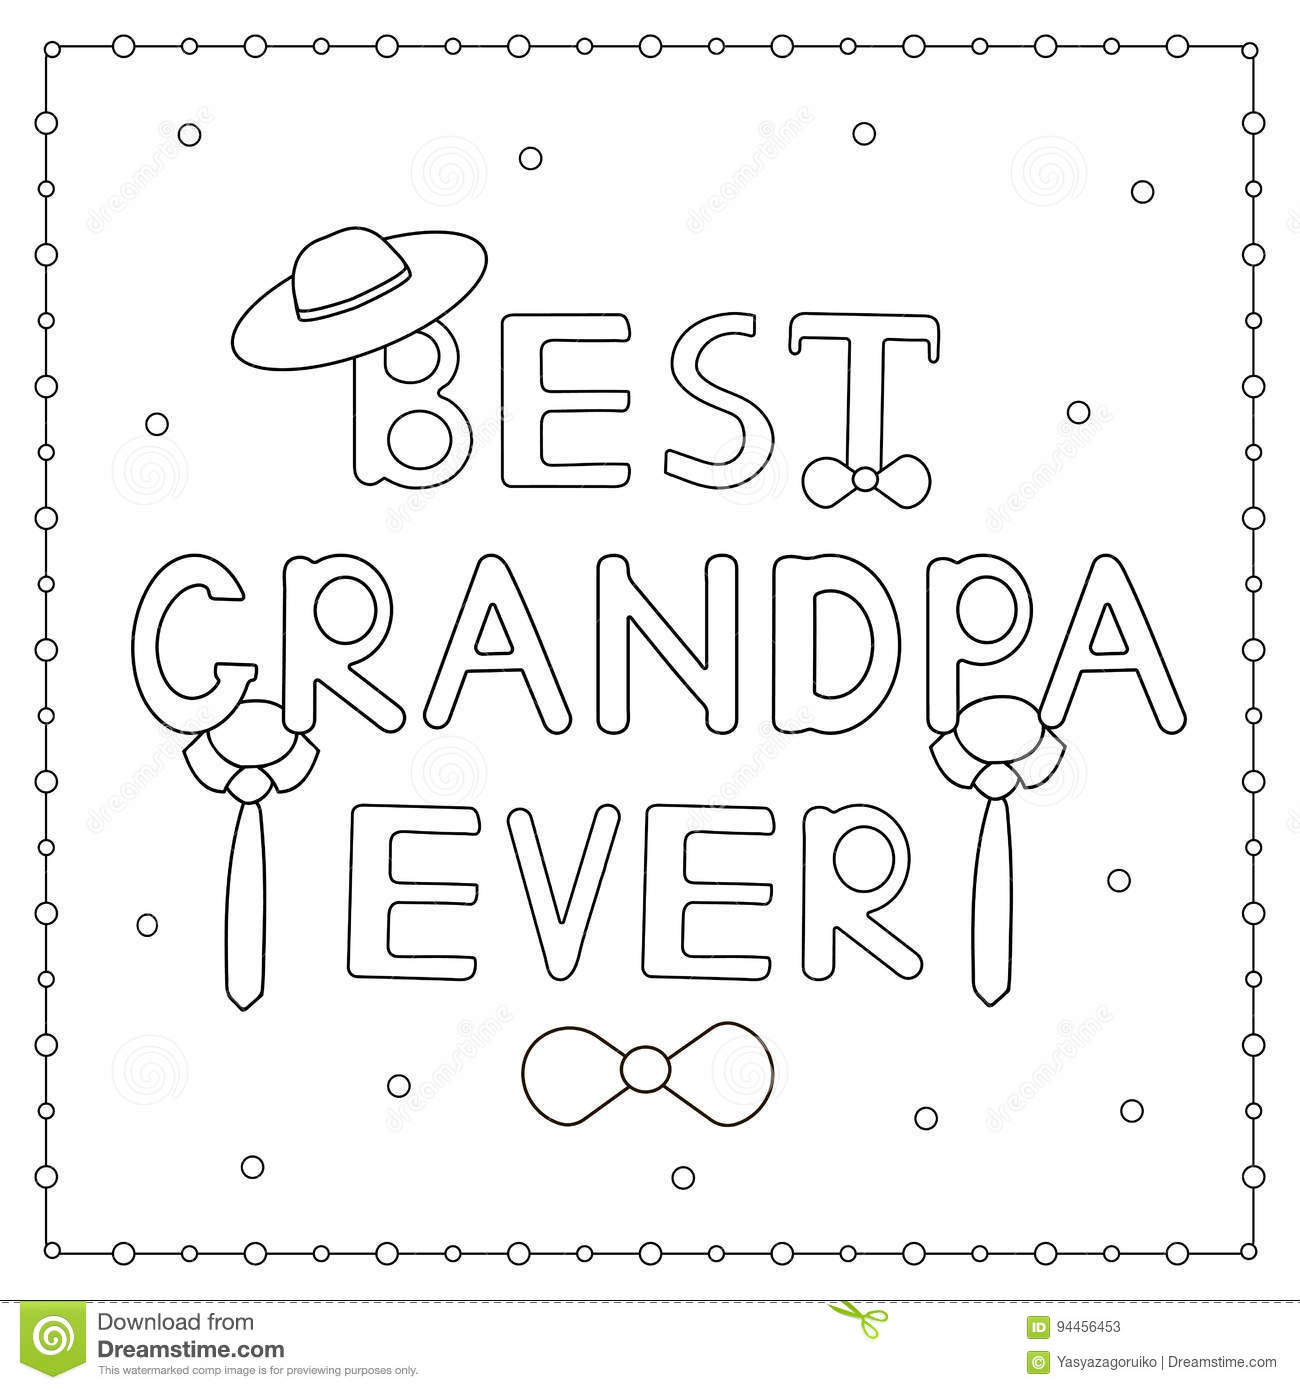 The Coloring Page With Hand Drawn Text Stock Vector - Illustration ...